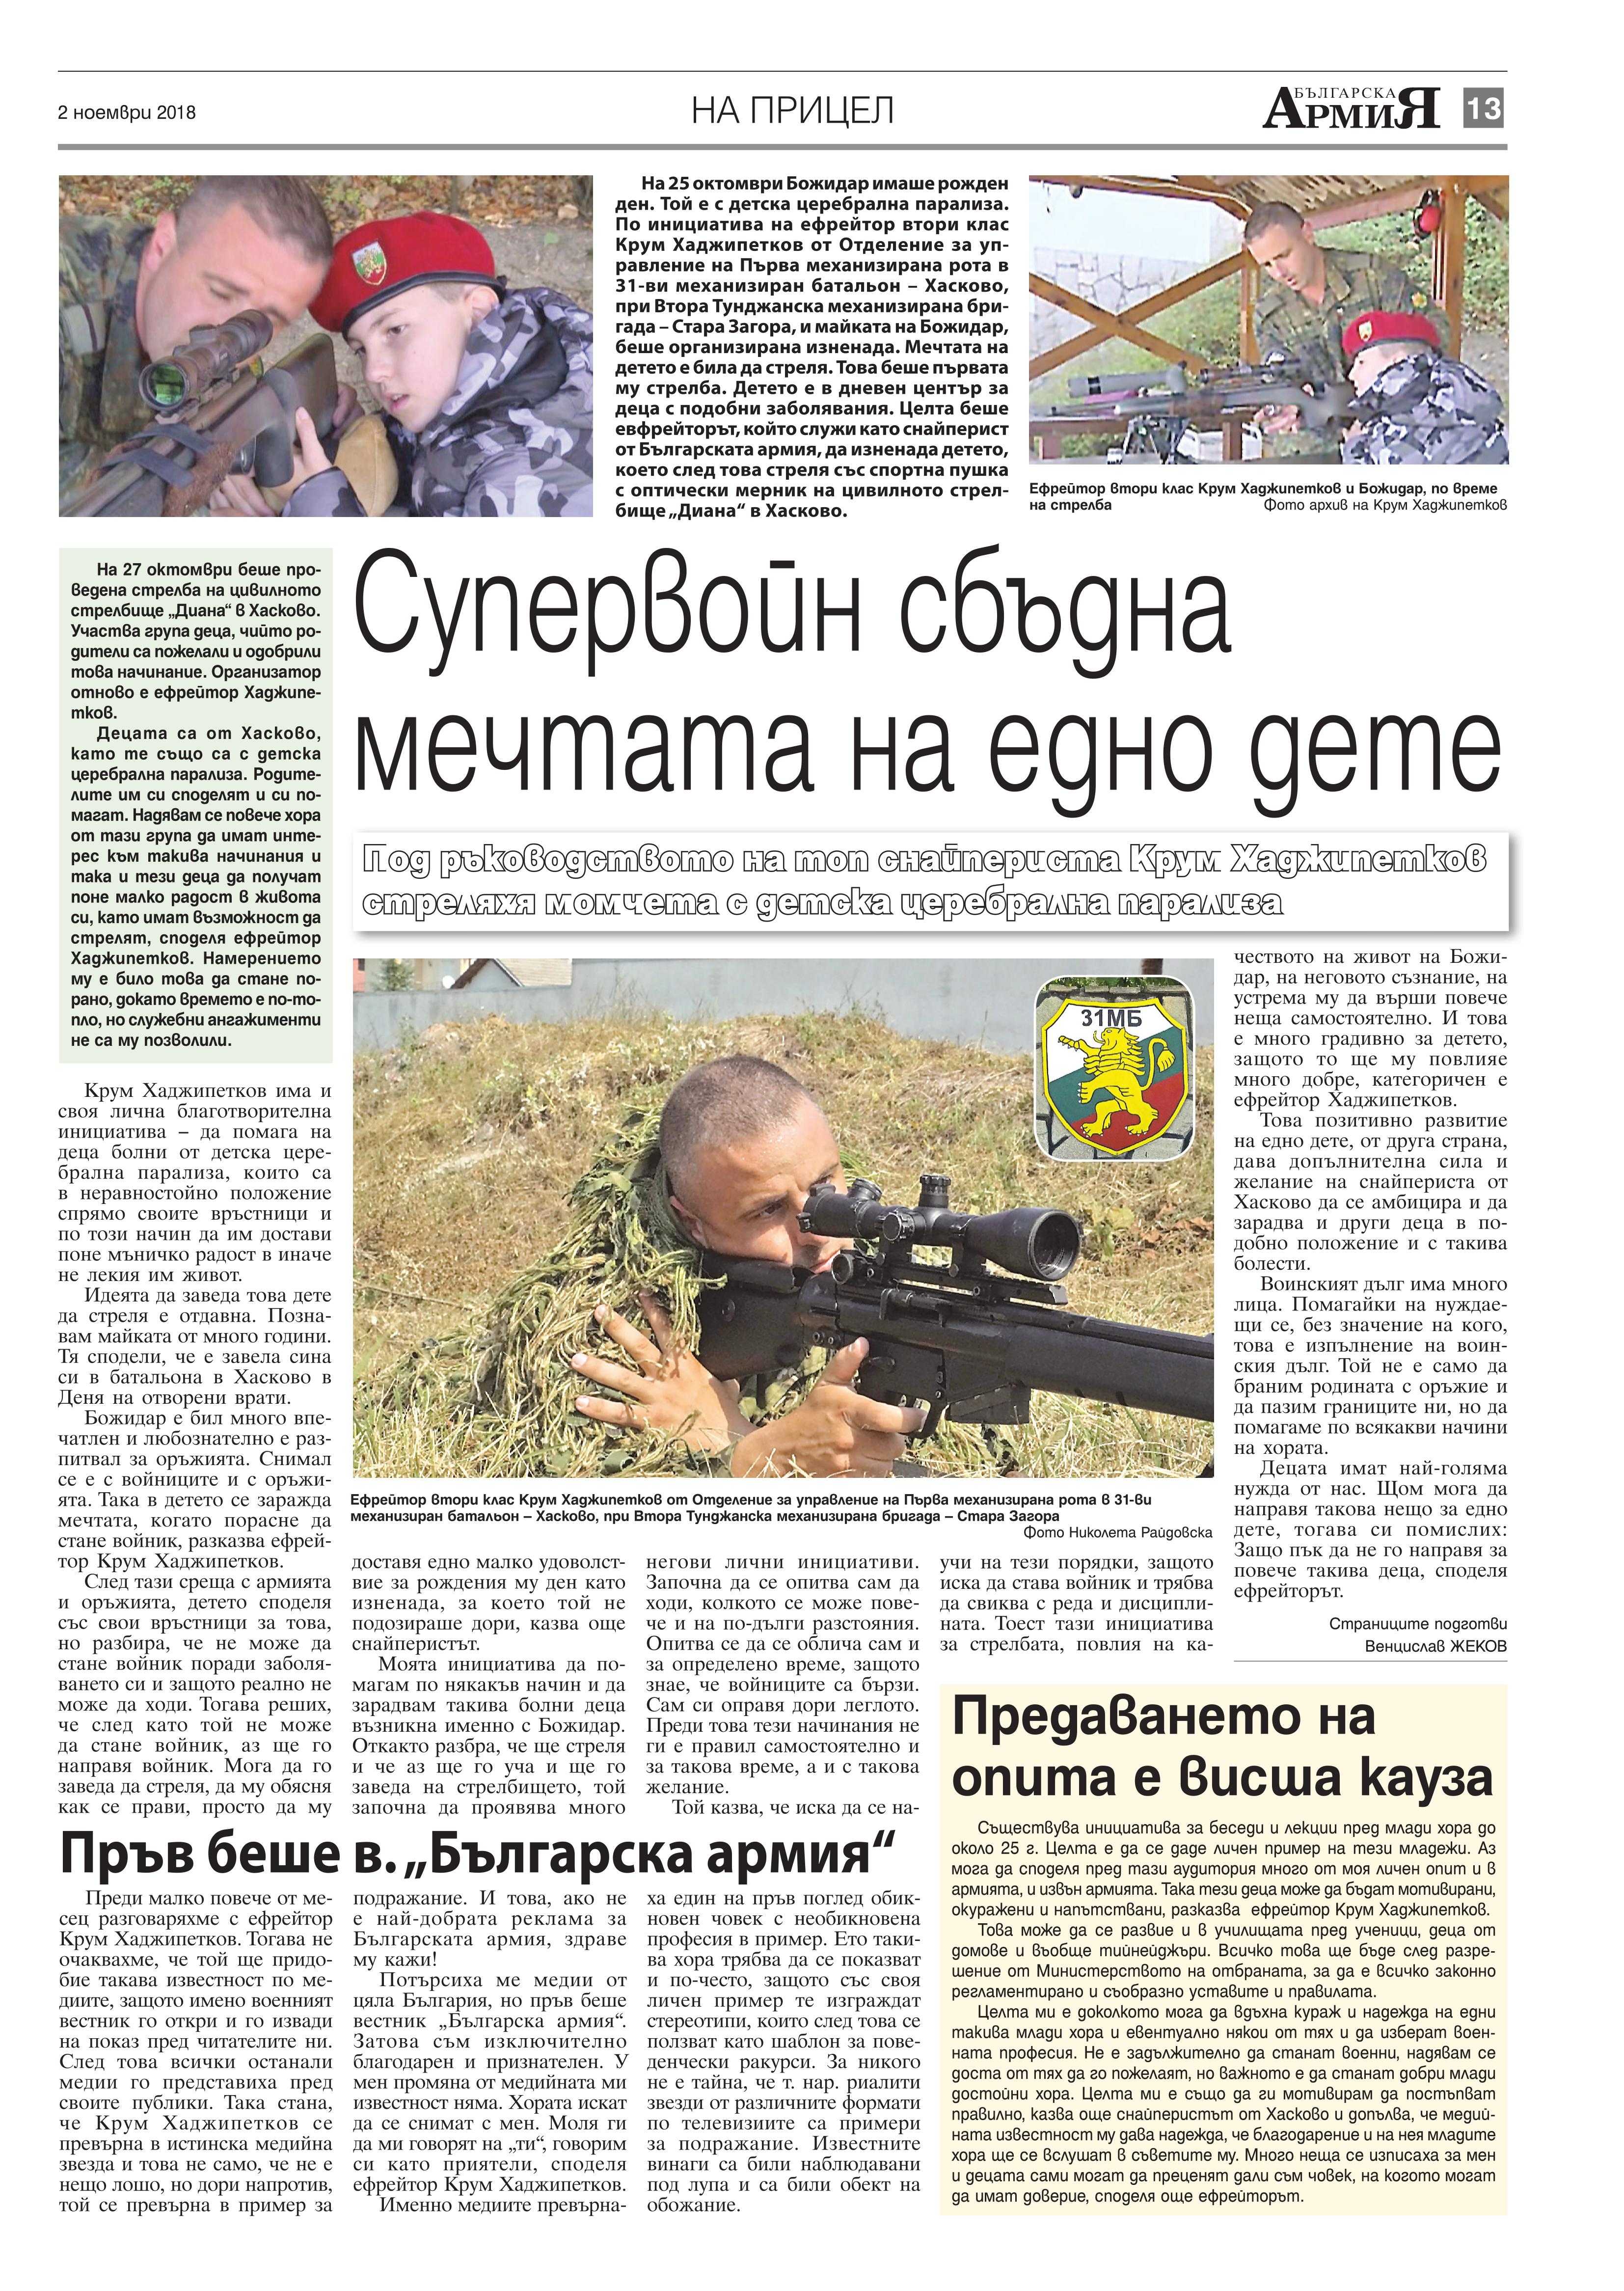 https://armymedia.bg/wp-content/uploads/2015/06/13.page1_-72.jpg